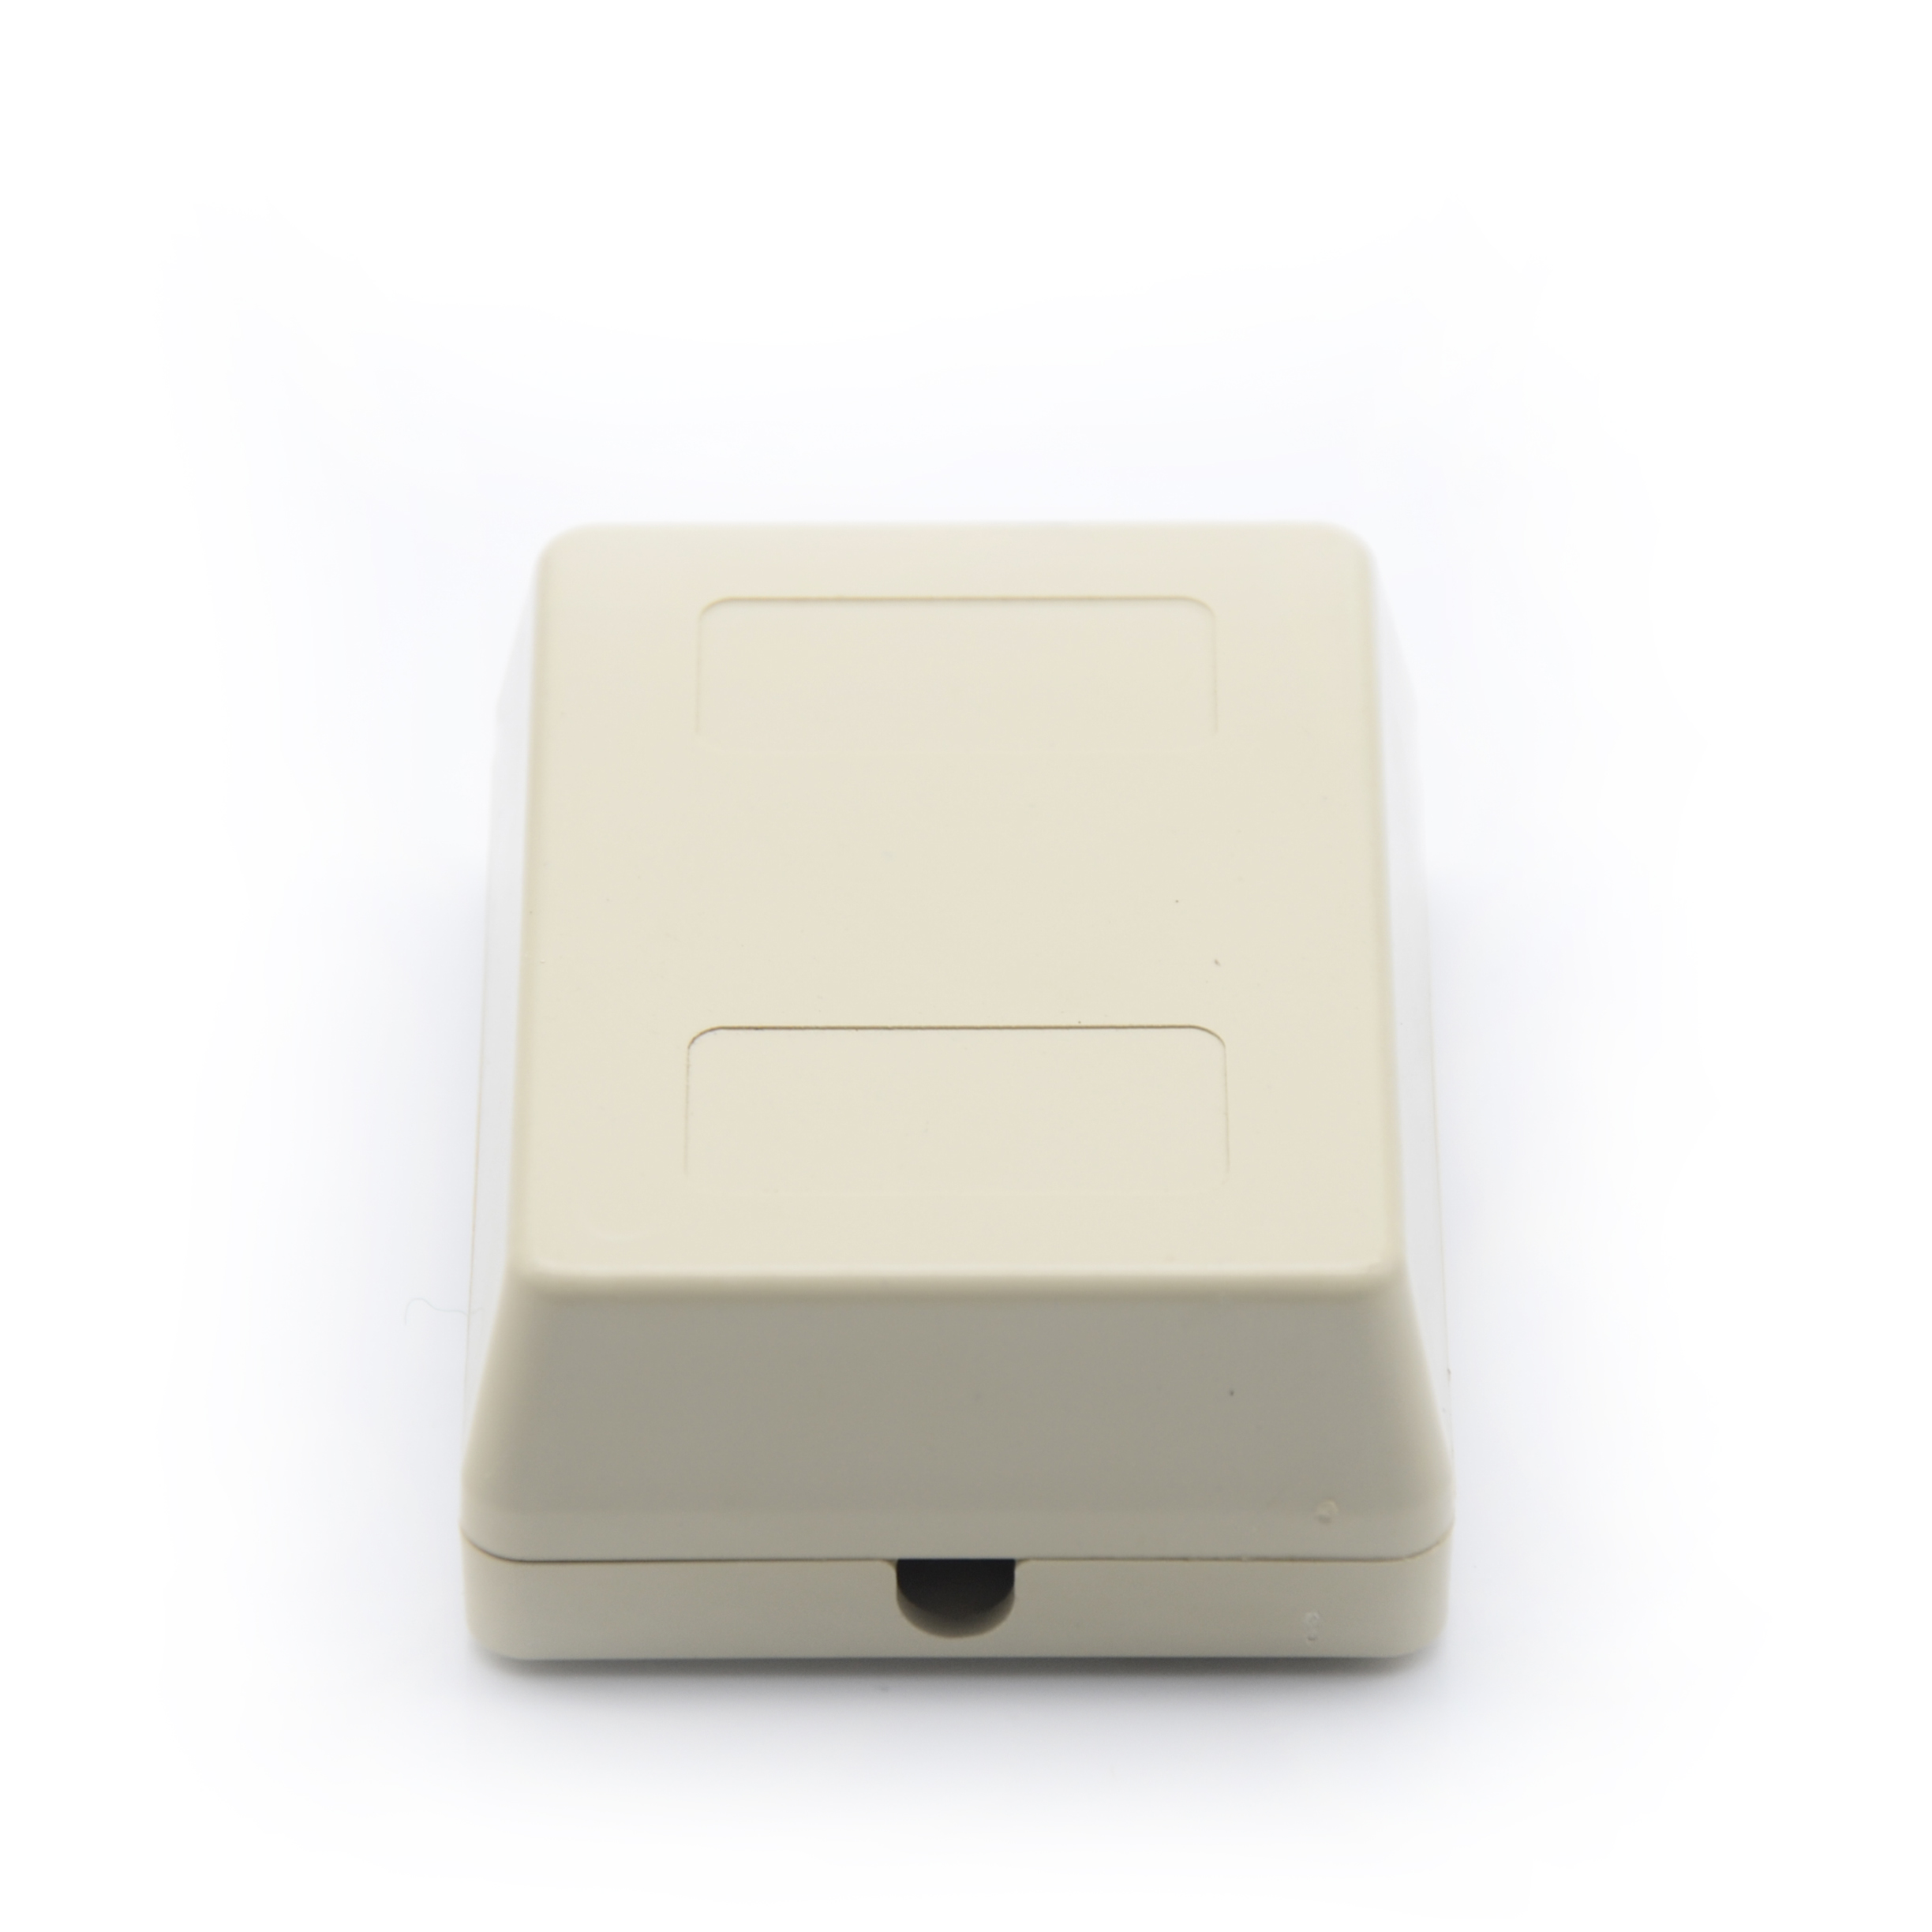 MT-5801 RJ11 Keystone Jack with Gel Waterproof Telephone Outlet Surface Box